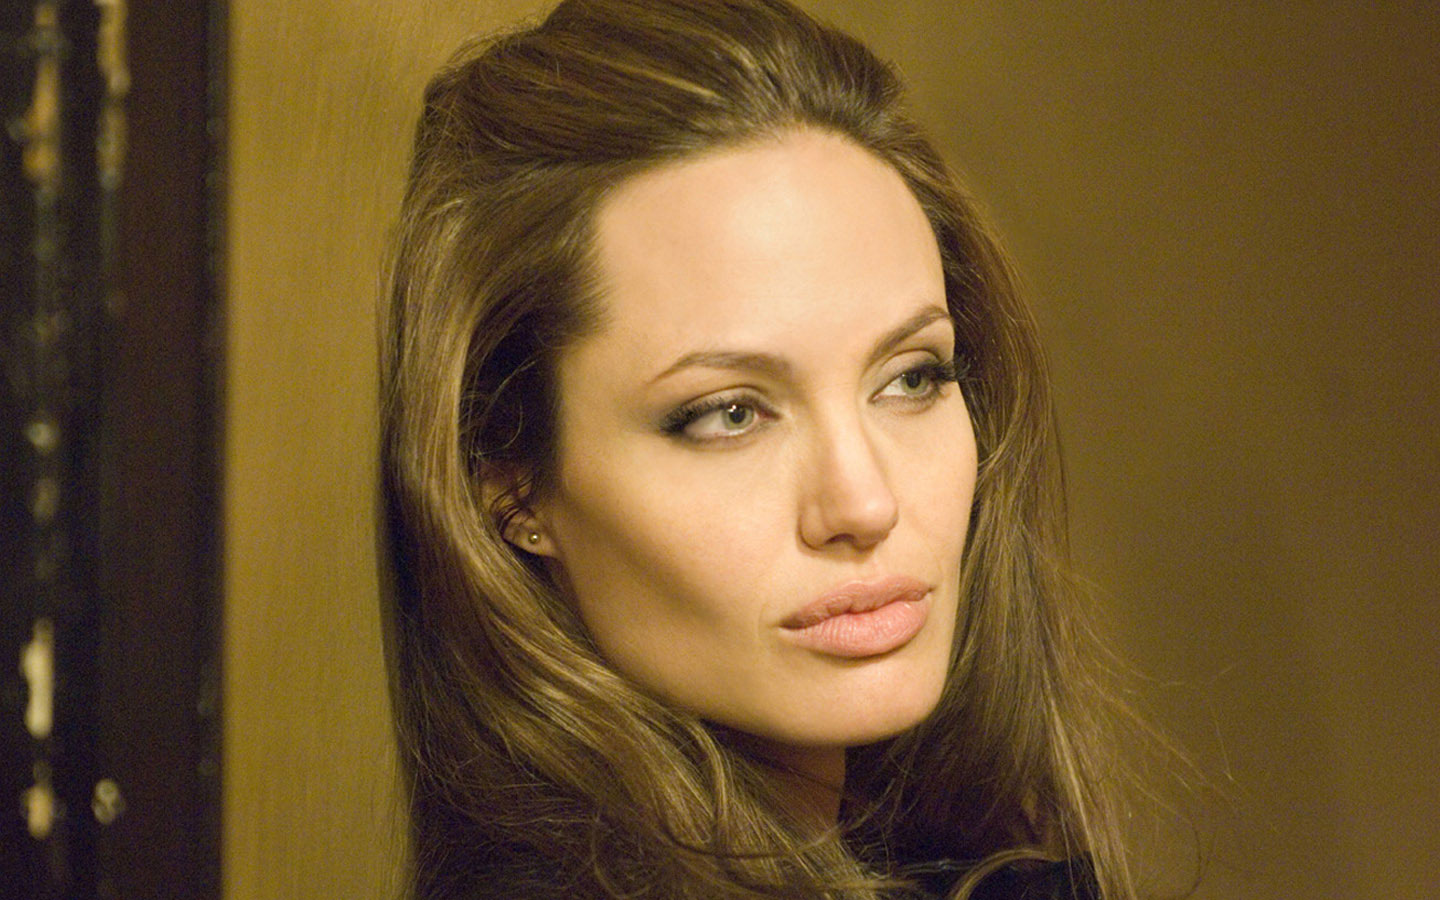 Very Hot hd wallpaper Of Angelina Jolie Wallpaper